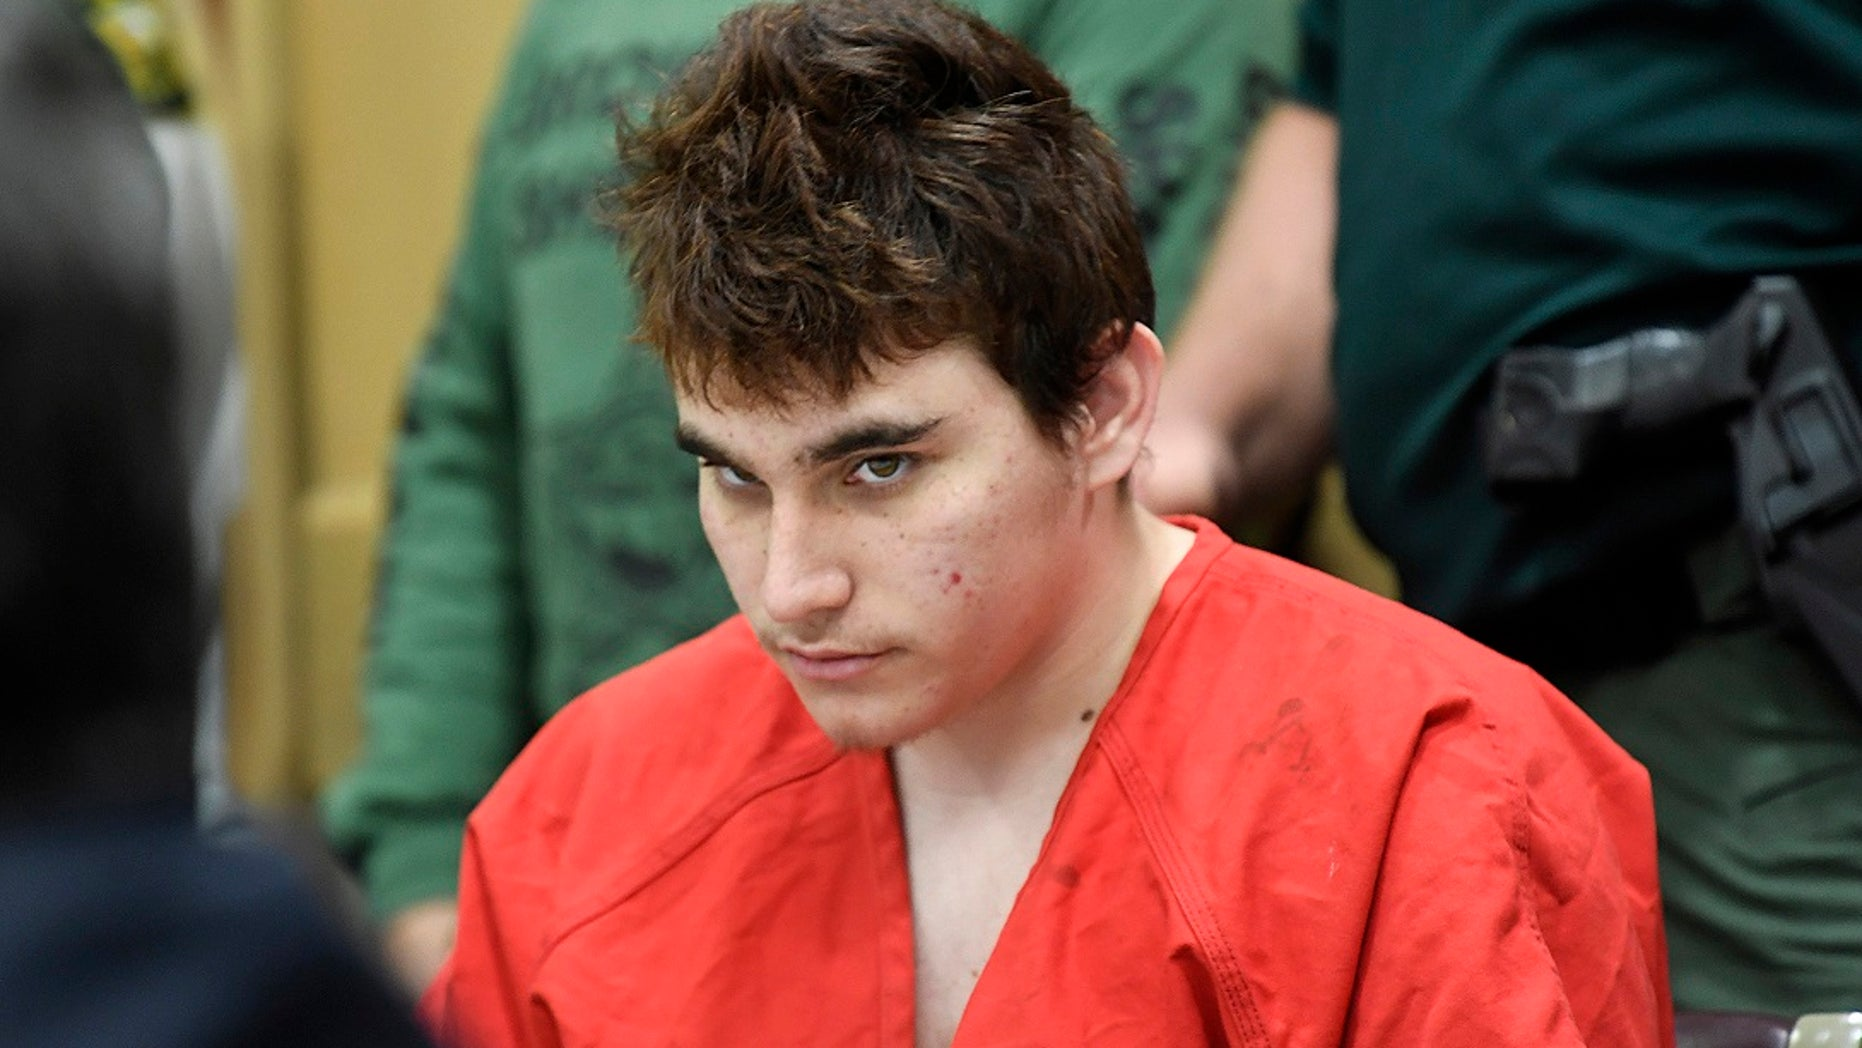 FILE - Florida school shooting suspect Nikolas Cruz looks up while in court for a hearing in Fort Lauderdale, Fla.